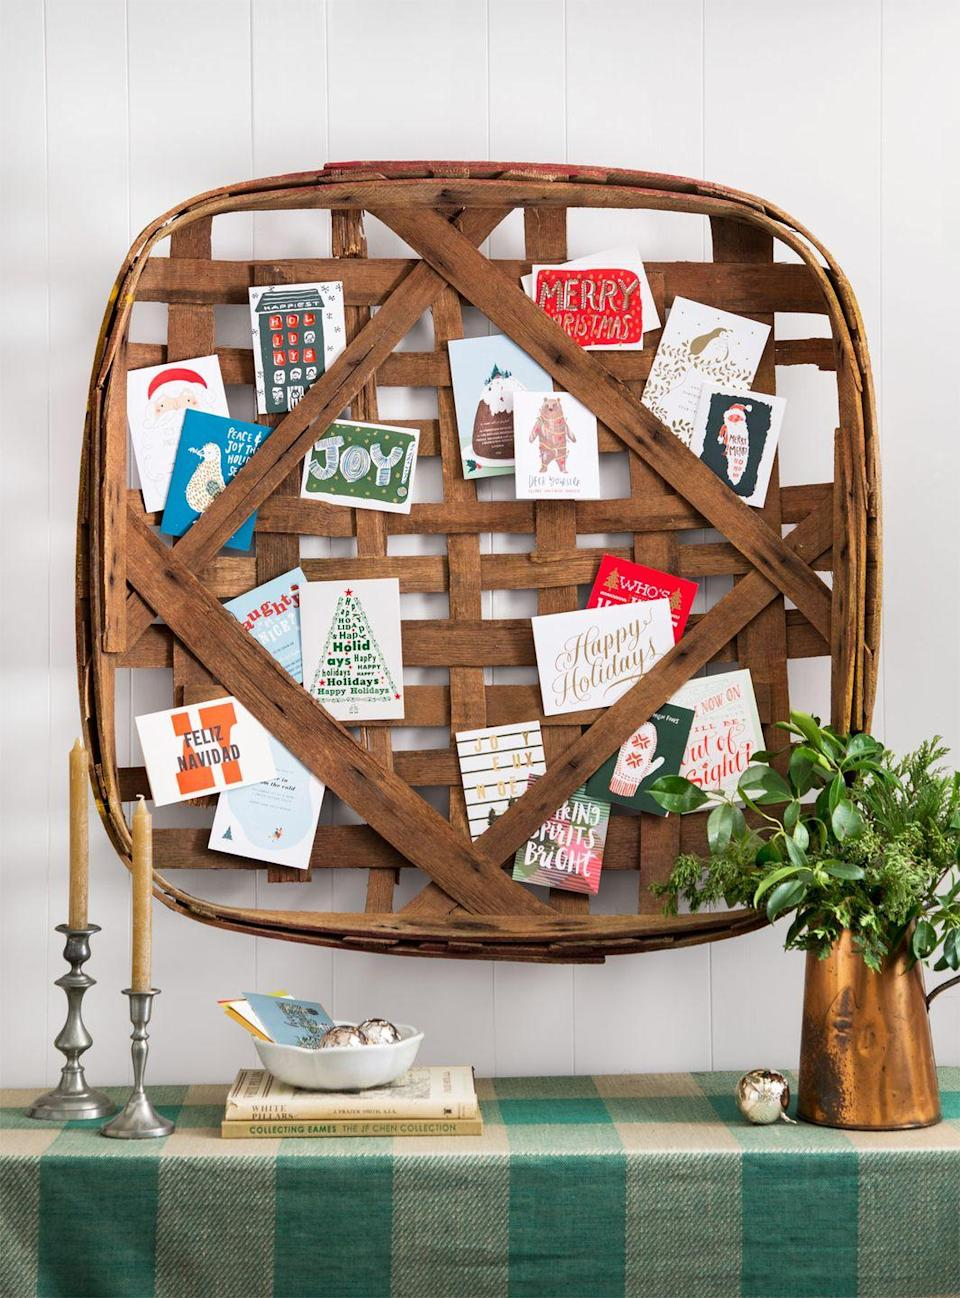 """<p>Show off the influx of season's greetings on a vintage tobacco basket by tucking well wishes into the overlapping strips of reed. (For old baskets, try <a href=""""https://www.ebay.com/"""" rel=""""nofollow noopener"""" target=""""_blank"""" data-ylk=""""slk:eBay"""" class=""""link rapid-noclick-resp"""">eBay</a>, <a href=""""https://www.etsy.com/"""" rel=""""nofollow noopener"""" target=""""_blank"""" data-ylk=""""slk:Etsy"""" class=""""link rapid-noclick-resp"""">Etsy</a>, or <em>CL</em> Fair vendor <a href=""""http://www.greatstuffbypaul.com/"""" rel=""""nofollow noopener"""" target=""""_blank"""" data-ylk=""""slk:Great Stuff By Paul"""" class=""""link rapid-noclick-resp"""">Great Stuff By Paul</a>). </p>"""